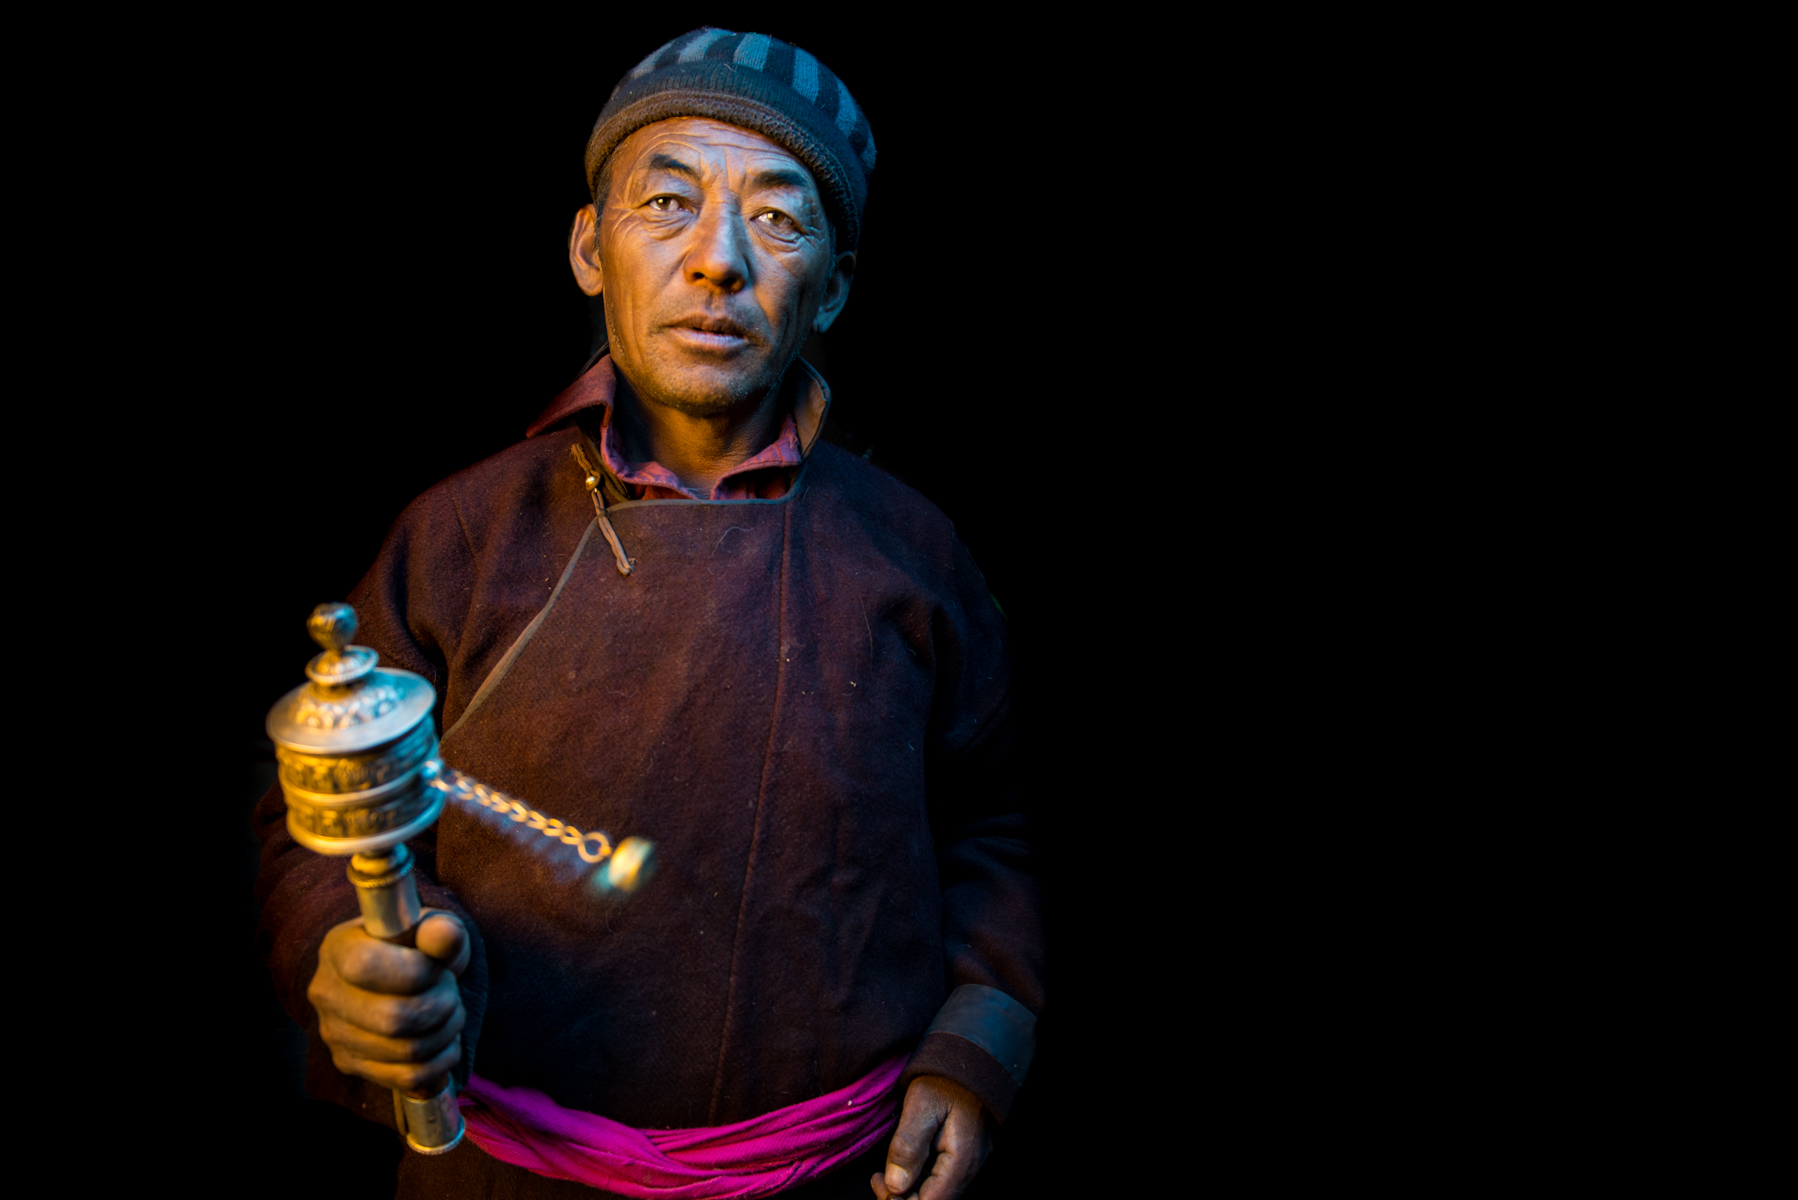 Changpa Man, near Tso Kar Lake